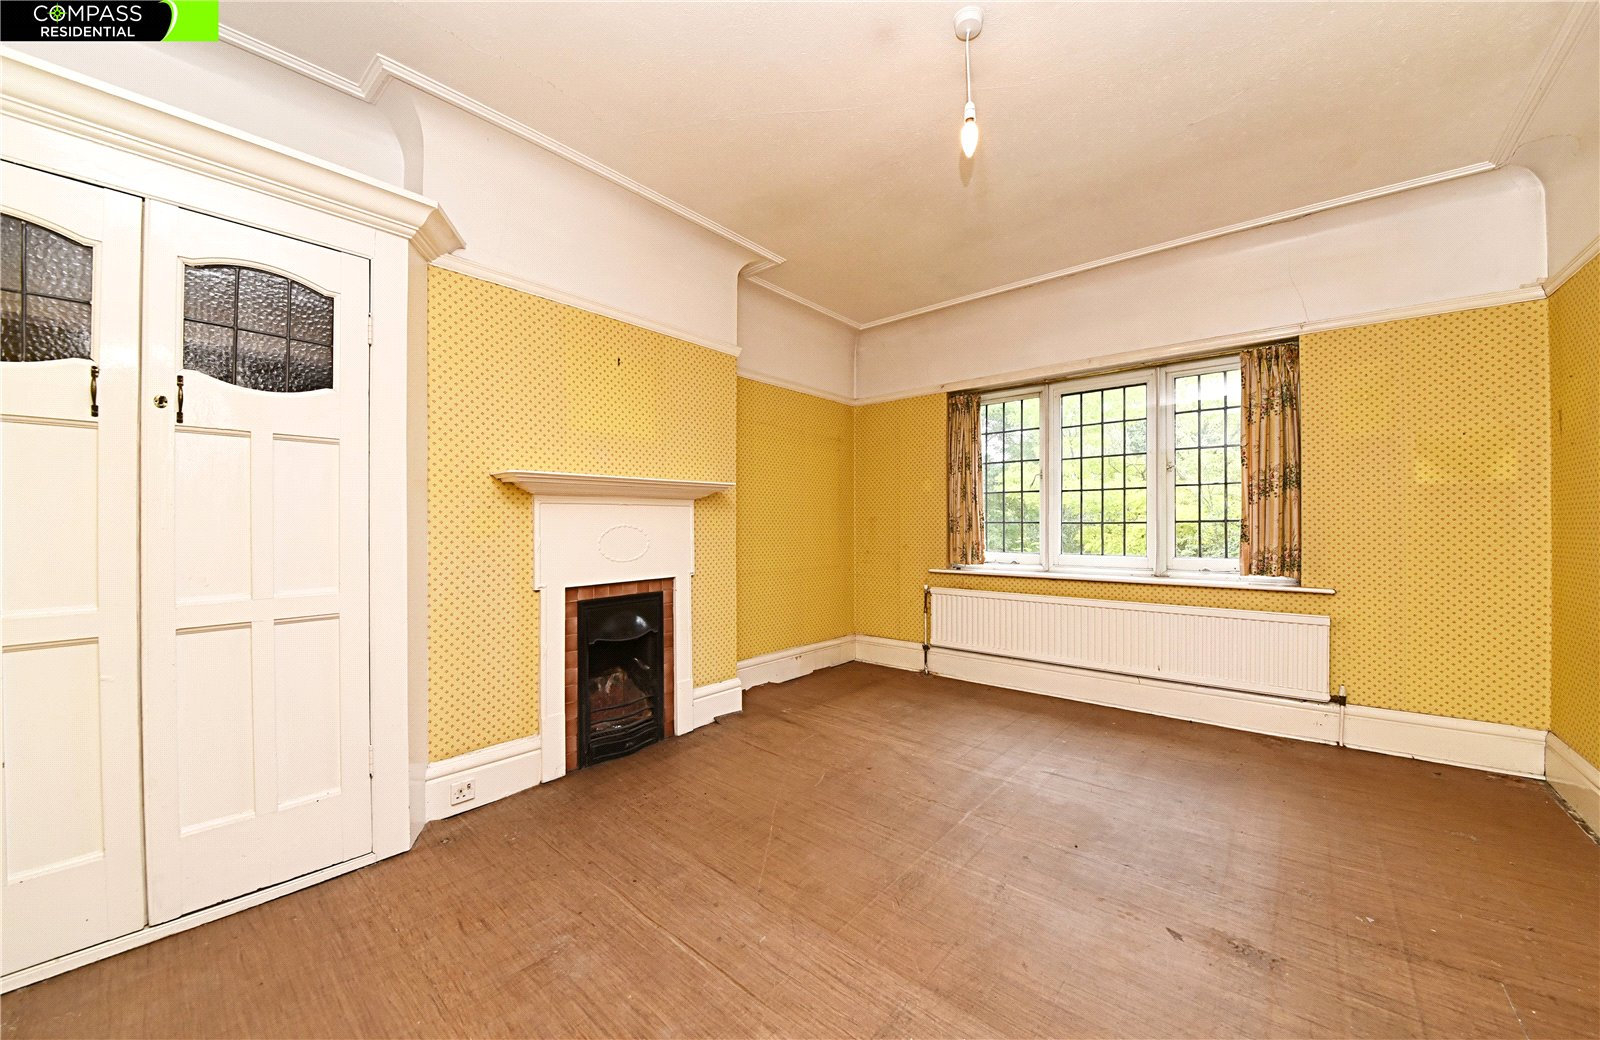 6 bed house for sale in Whetstone, N20 0NN  - Property Image 11